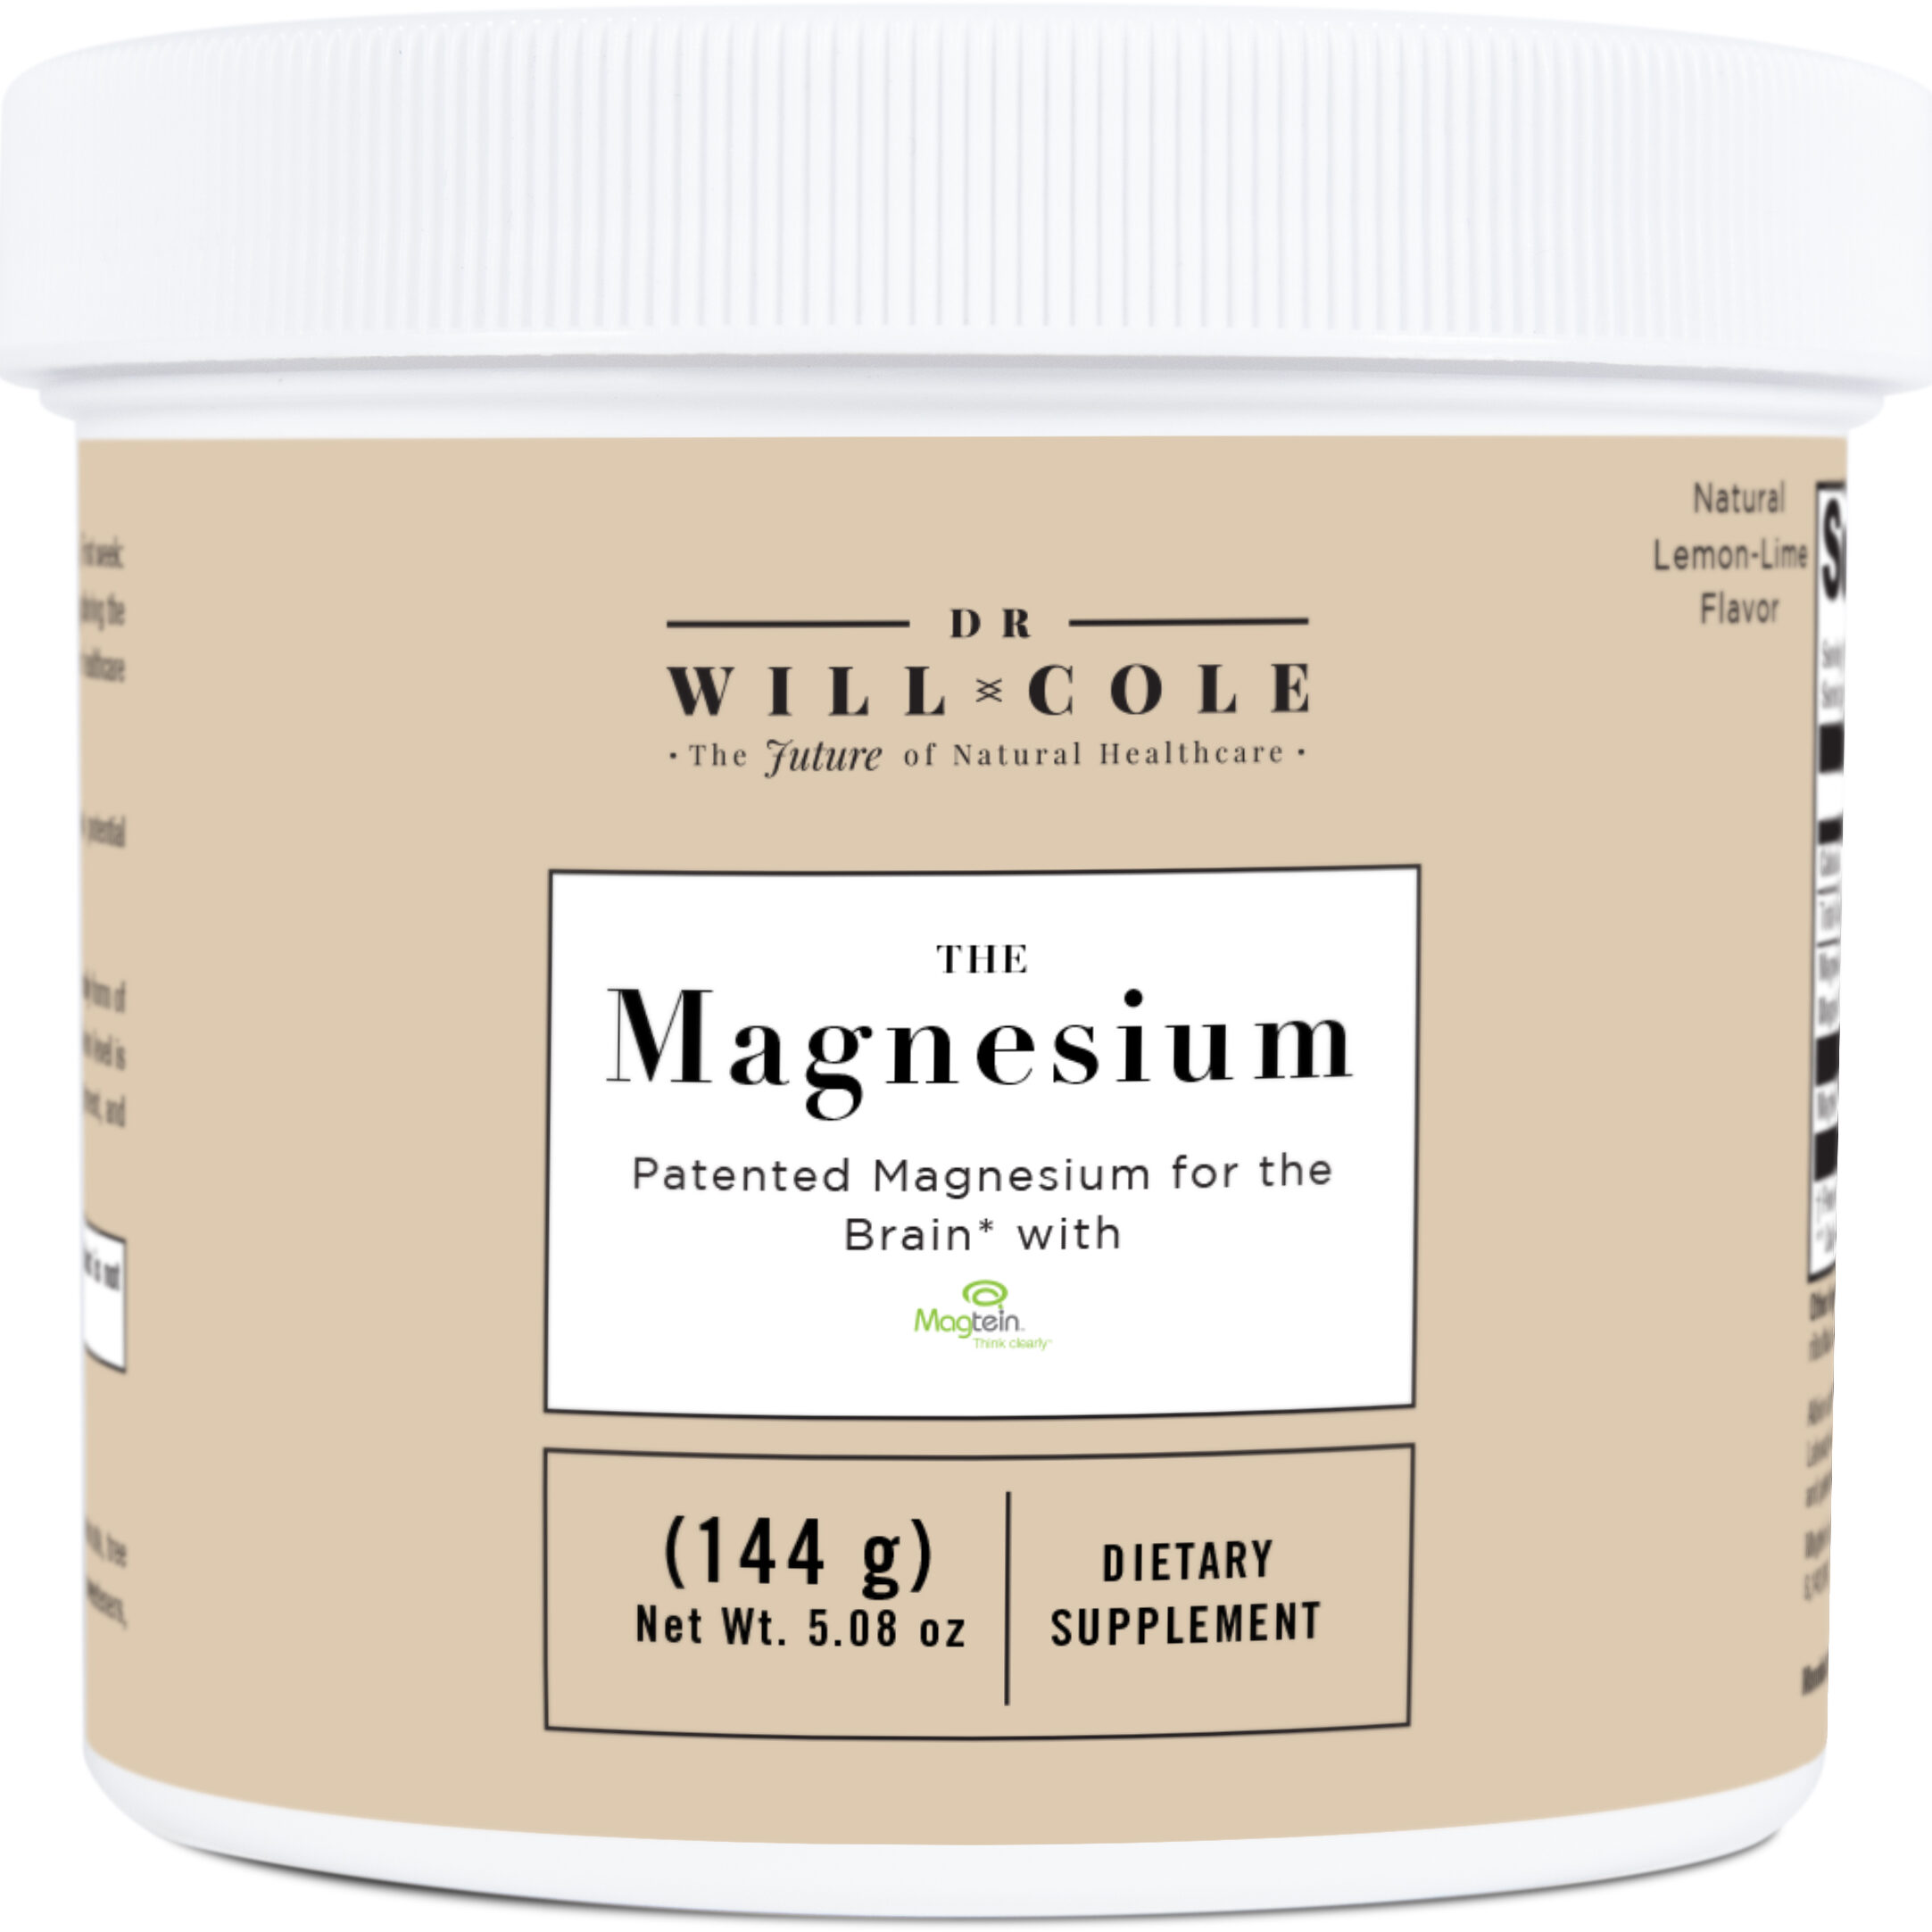 The Magnesium_5.29oz_OPMAGNL_COLEWIL